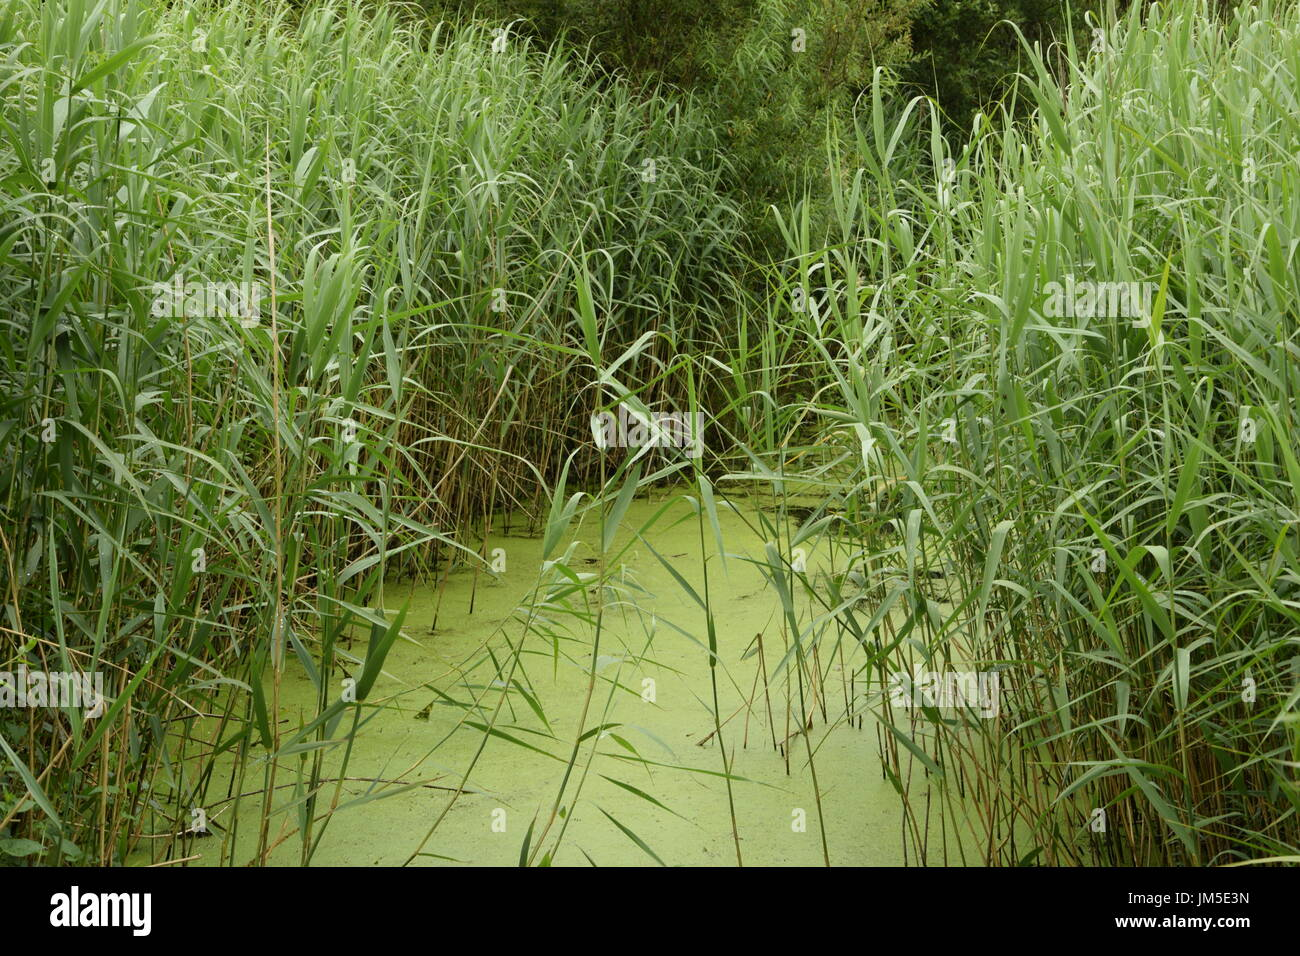 Lakeside grasses with algae in the west Ireland Stock Photo